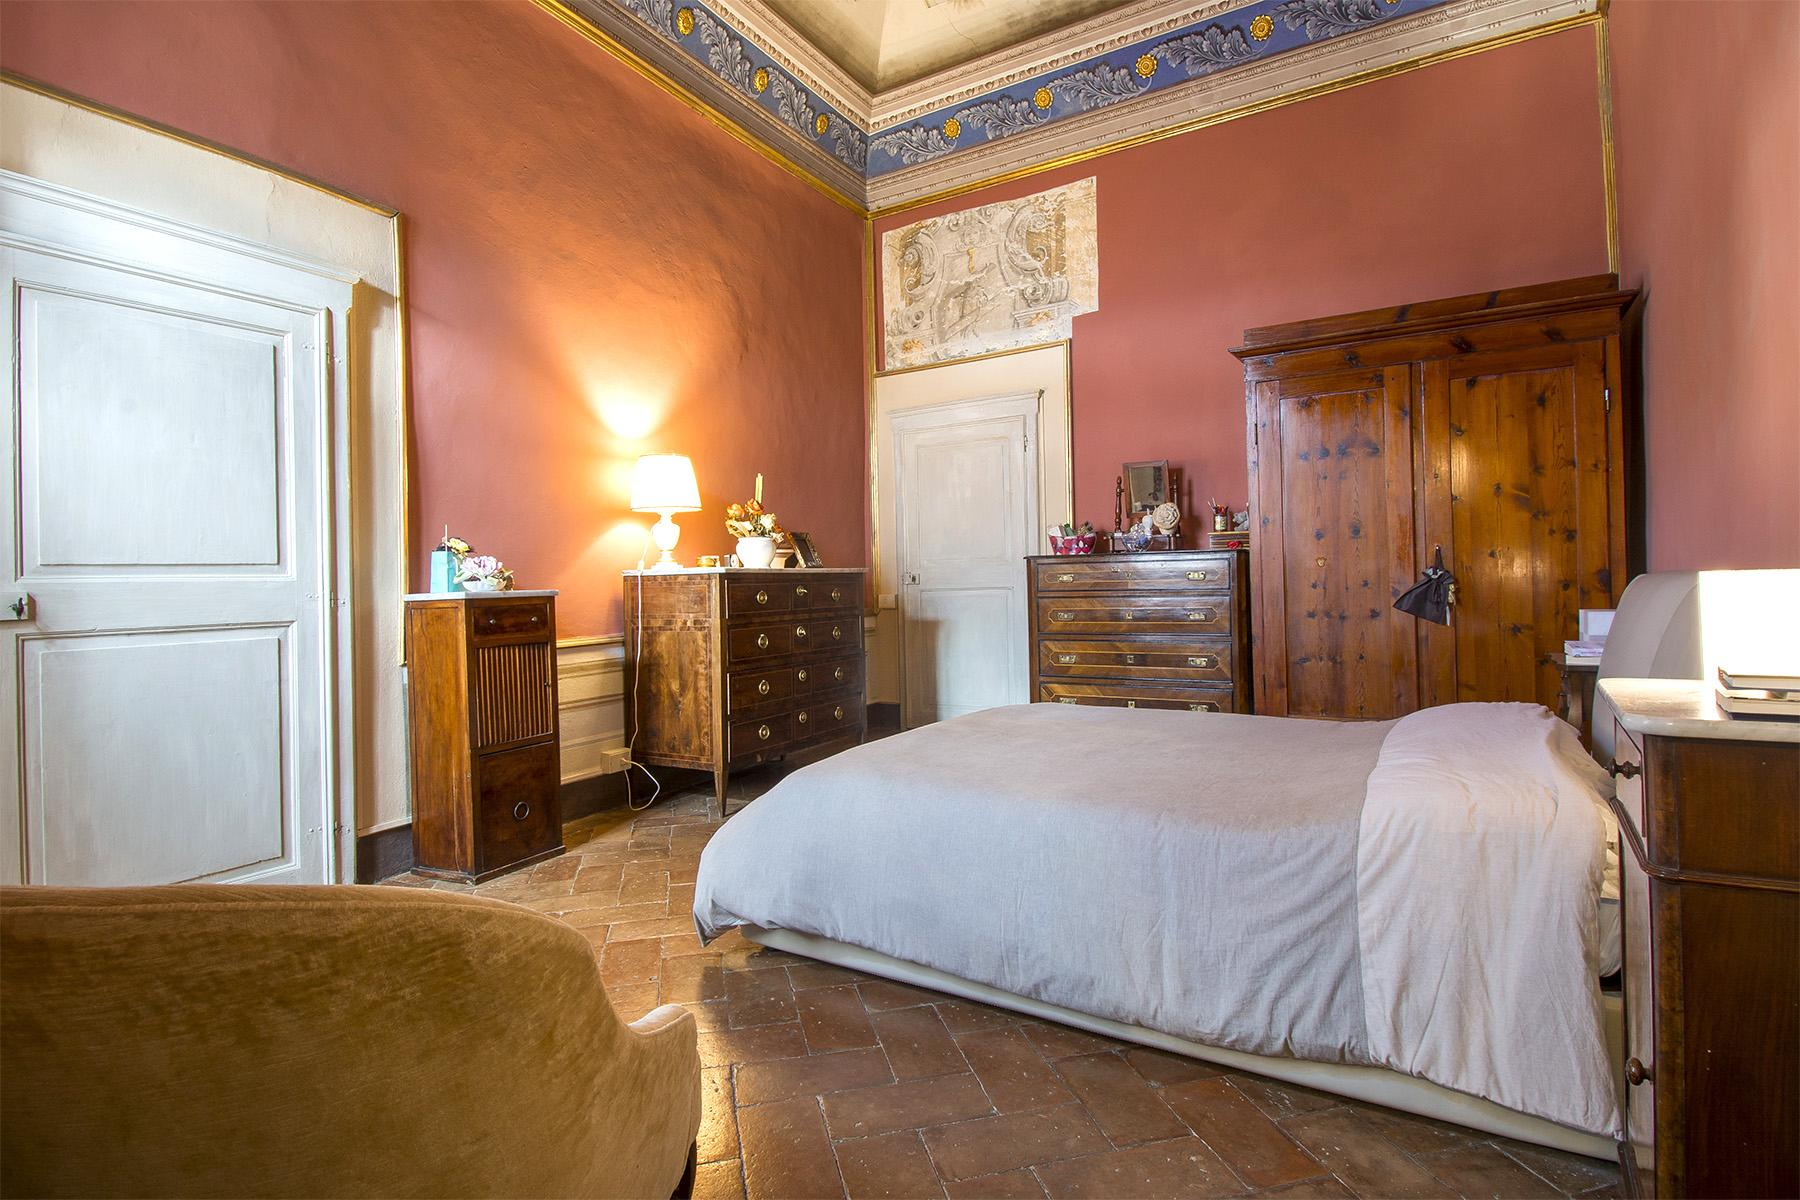 17th-century noble palace in the heart of Volterra - 17